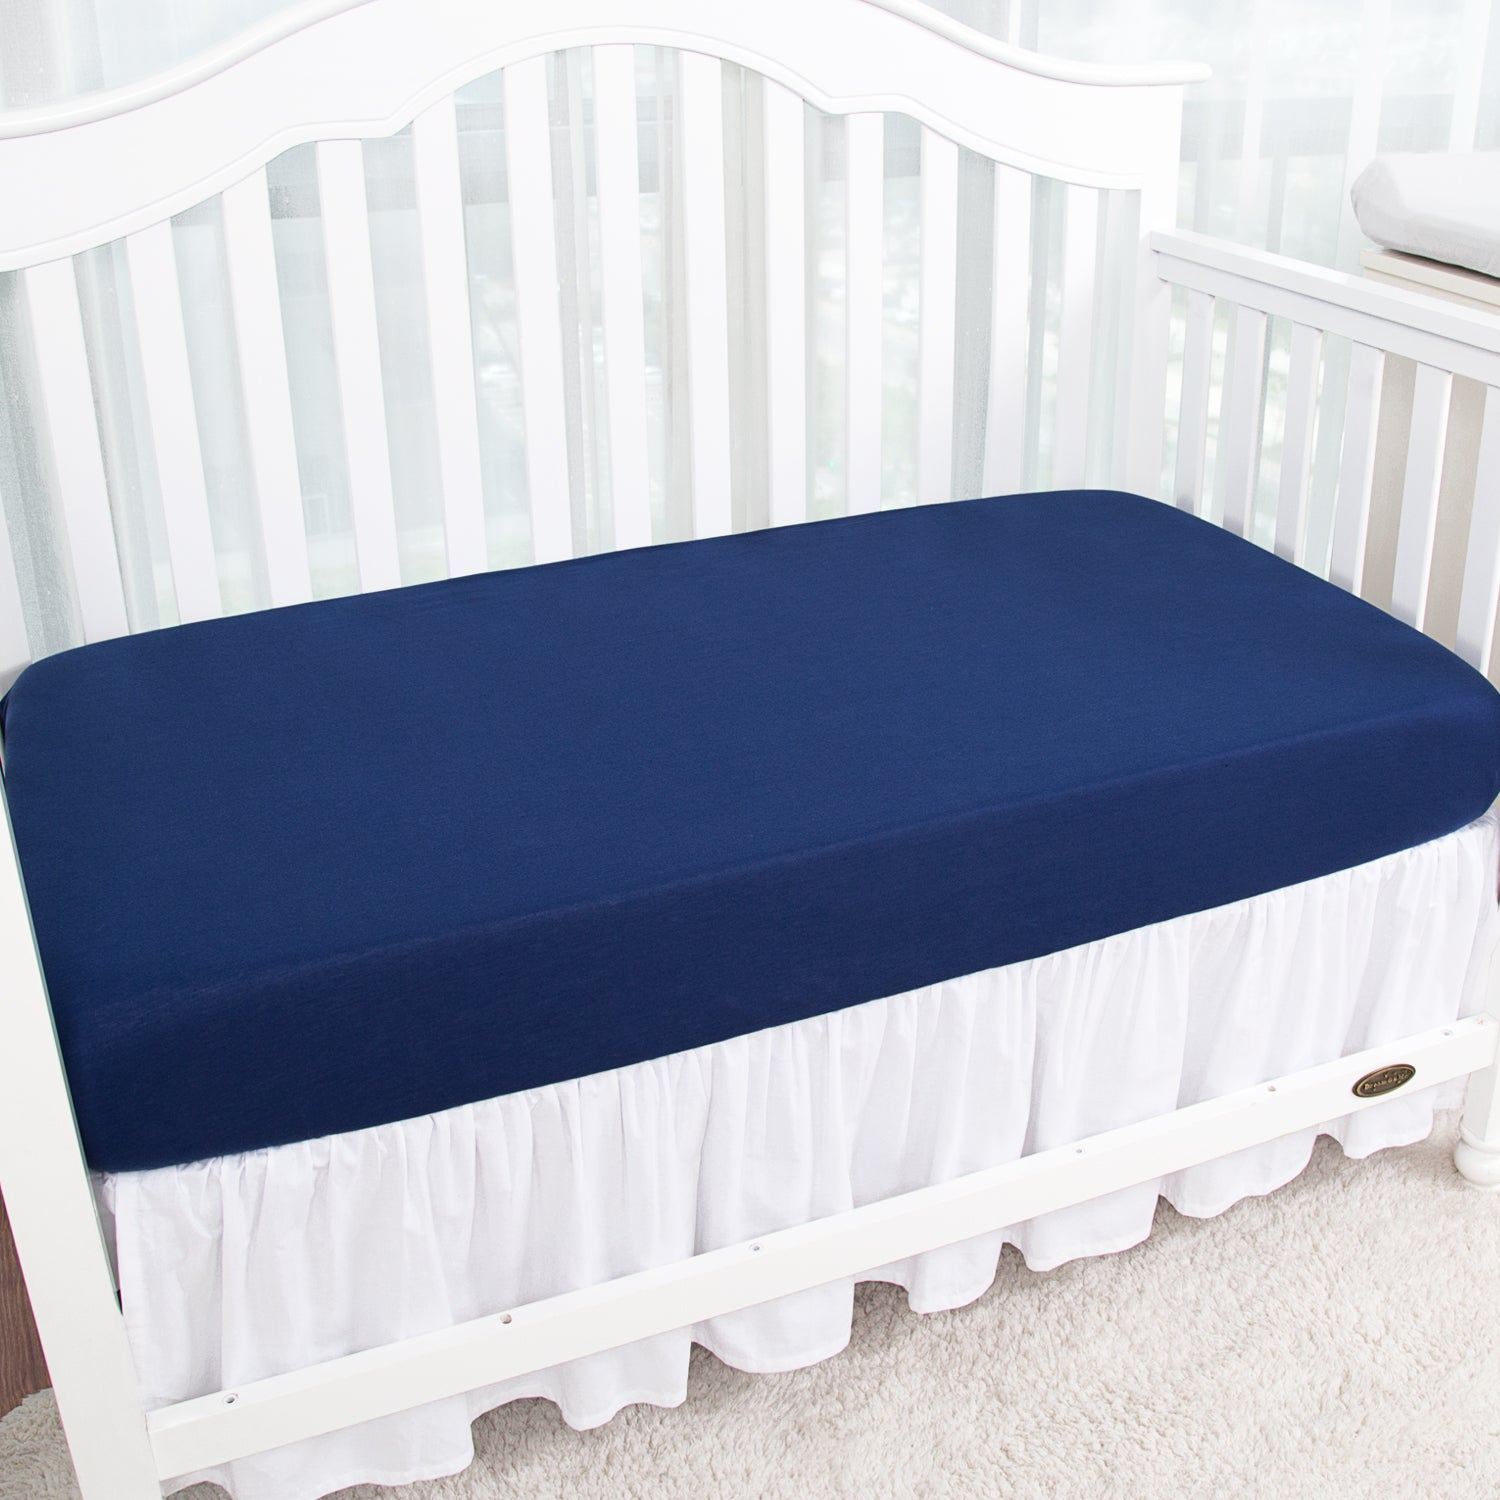 Microfiber Crib Sheet - 5 Colors